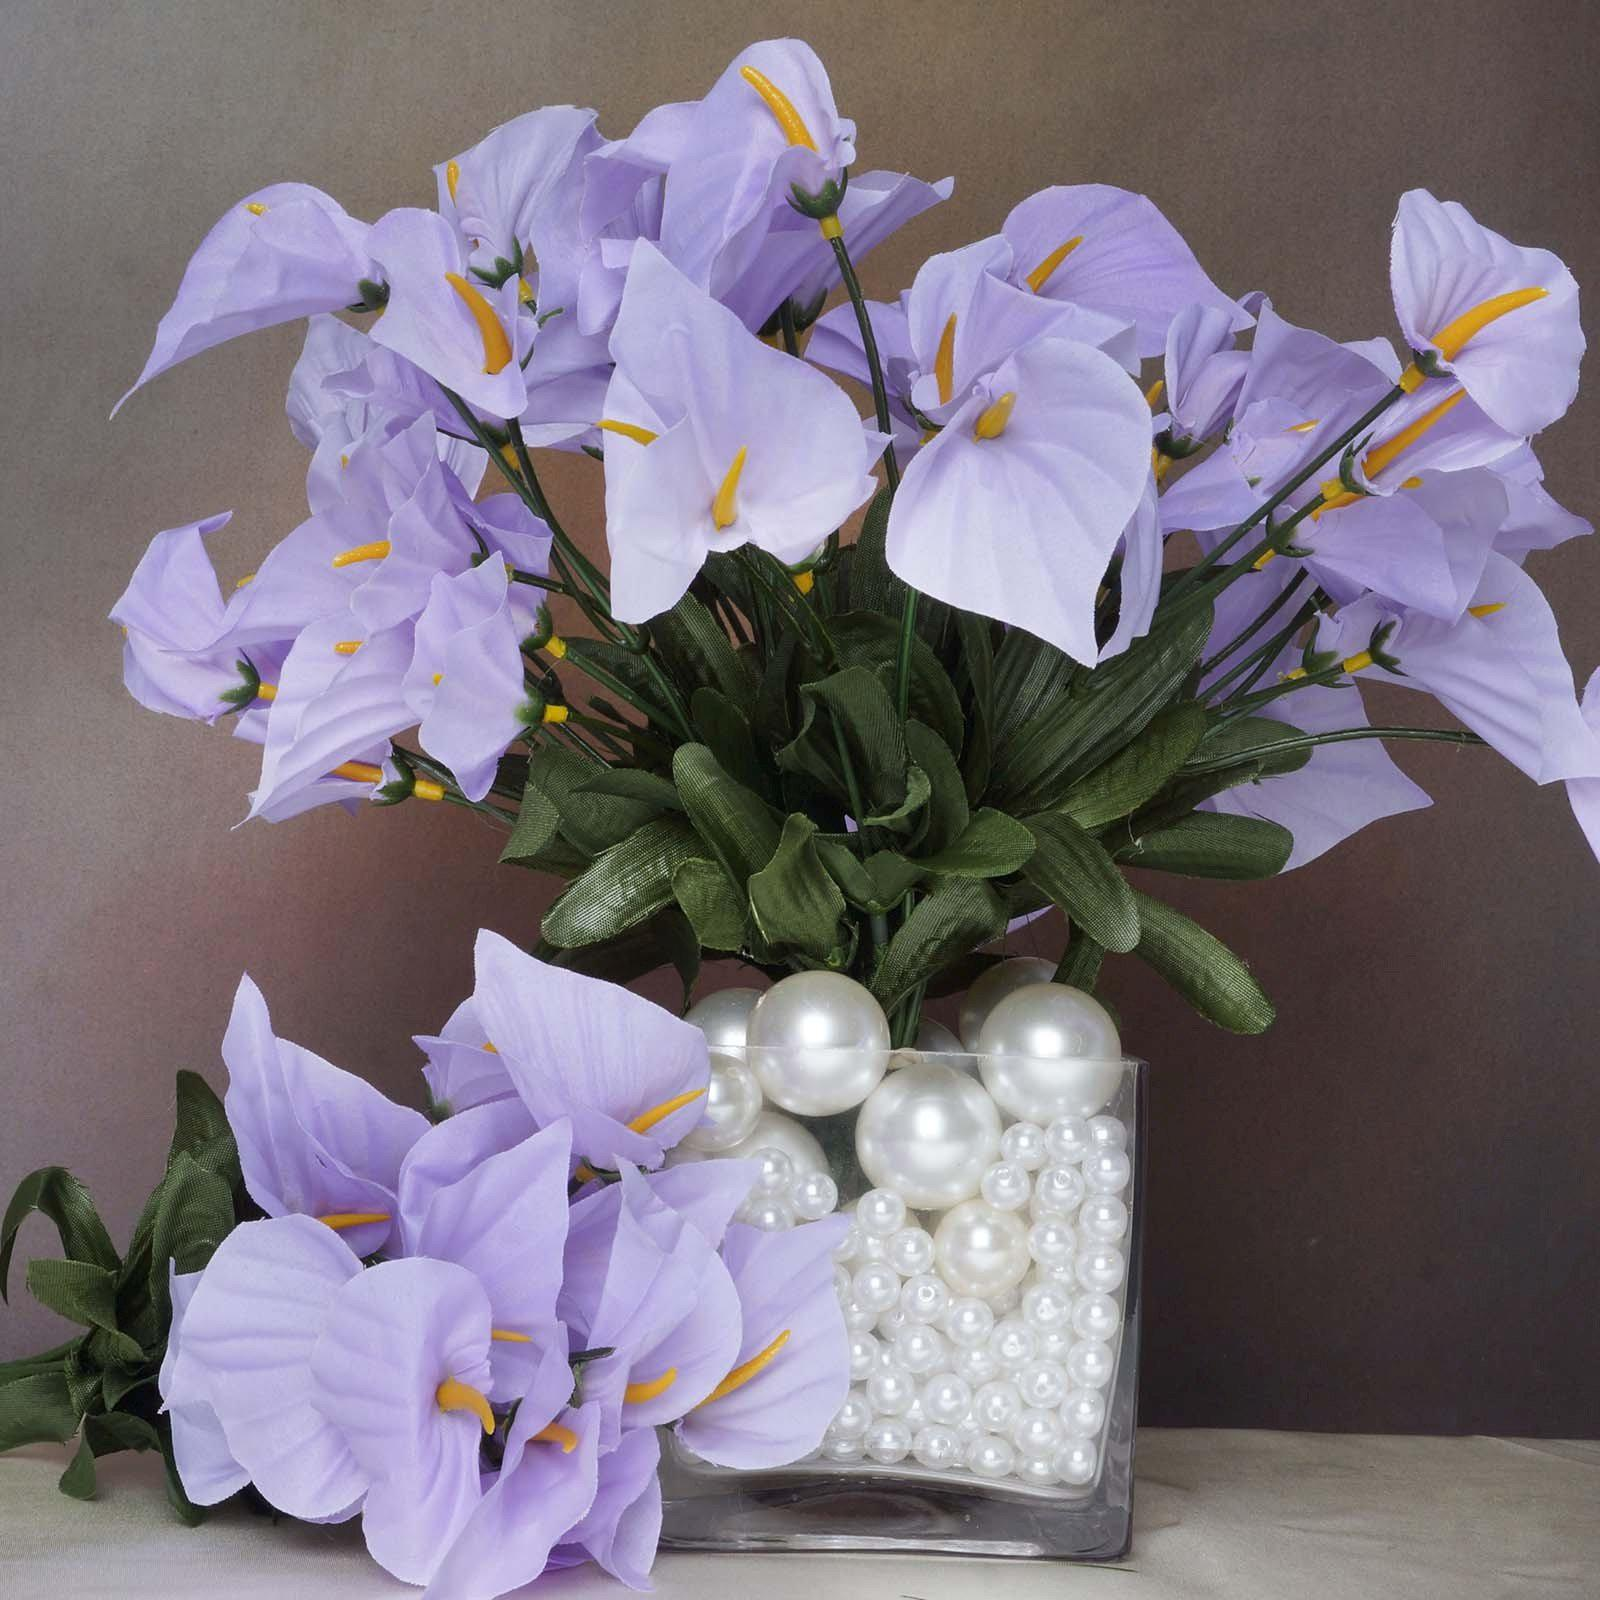 12 bush 252 pcs lavender artificial mini calla lilies flower wedding 252 wholesale artificial mini calla lilies wedding flower vase centerpiece decor lavender izmirmasajfo